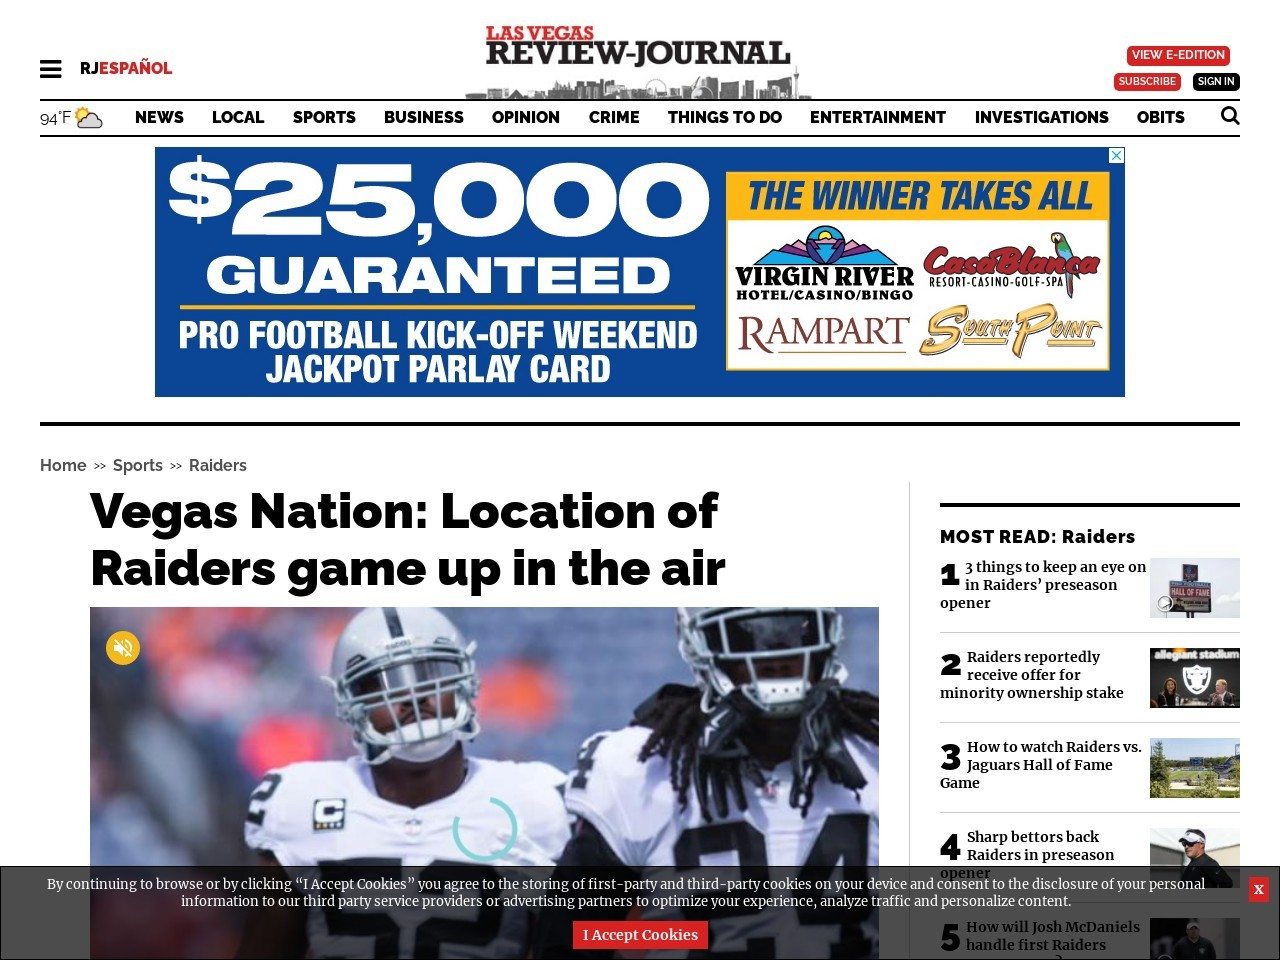 Vegas Nation: Location of Raiders game up in the air